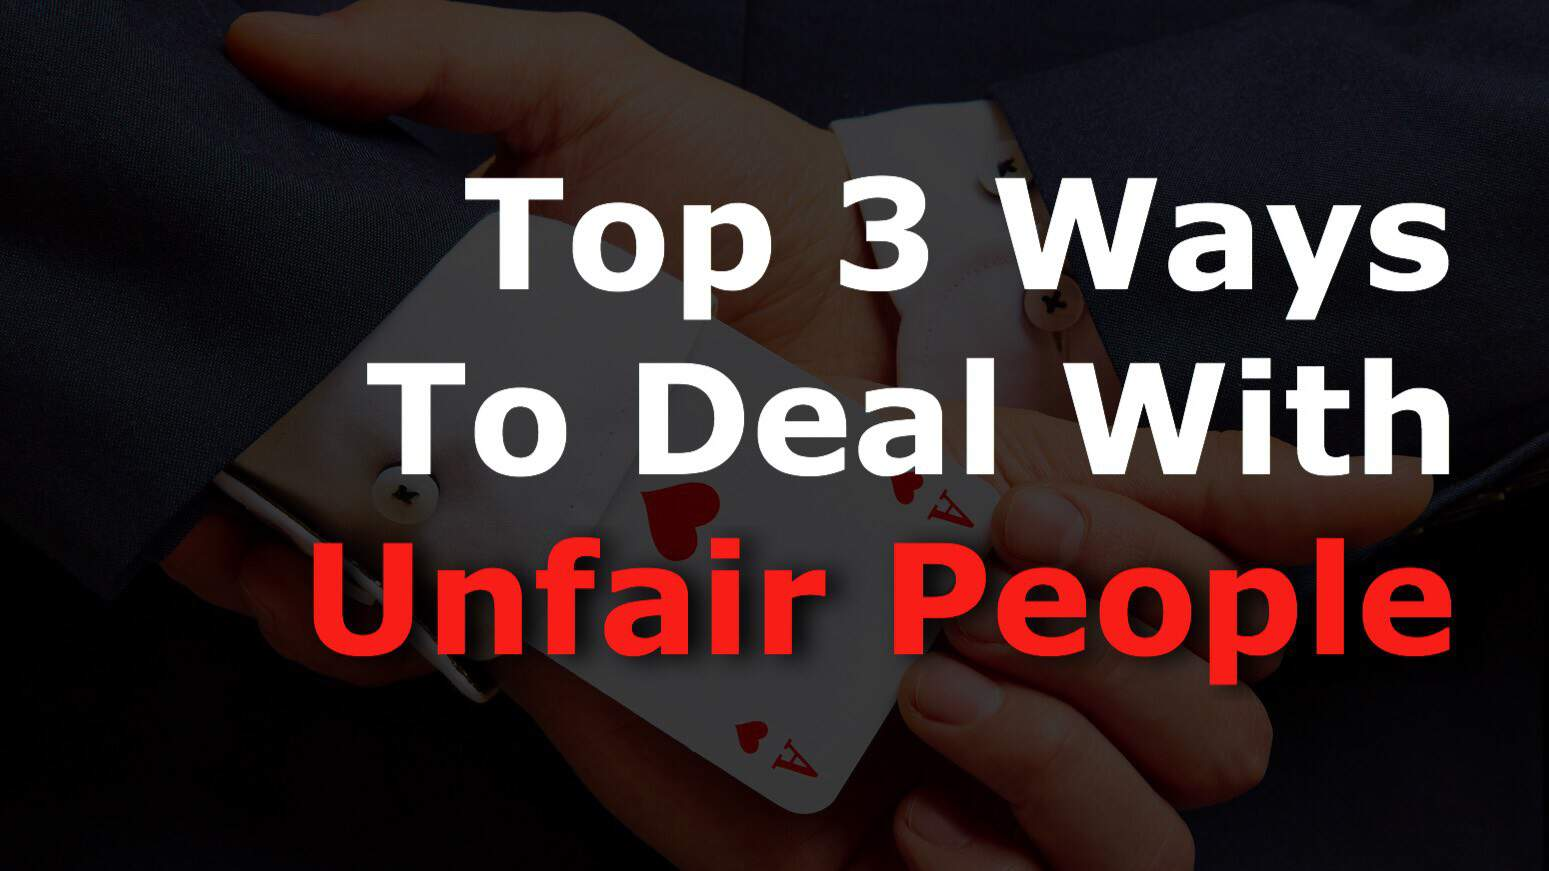 unfair people